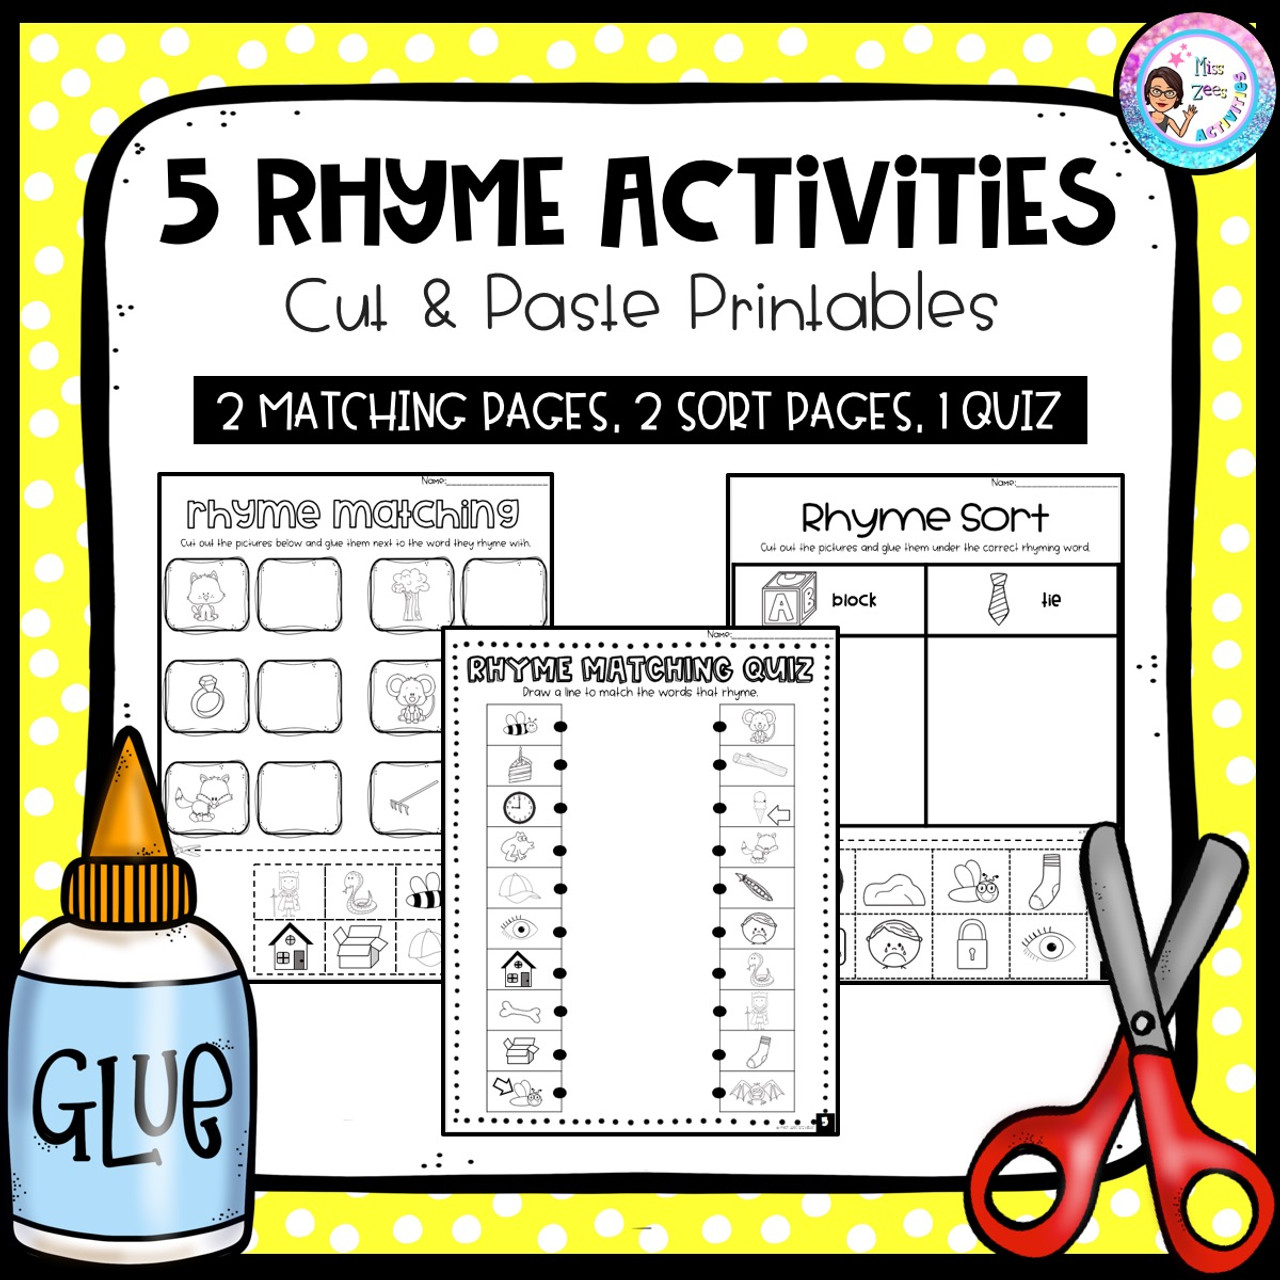 medium resolution of 5 Rhyme Activities: Cut \u0026 Paste Printables - Amped Up Learning